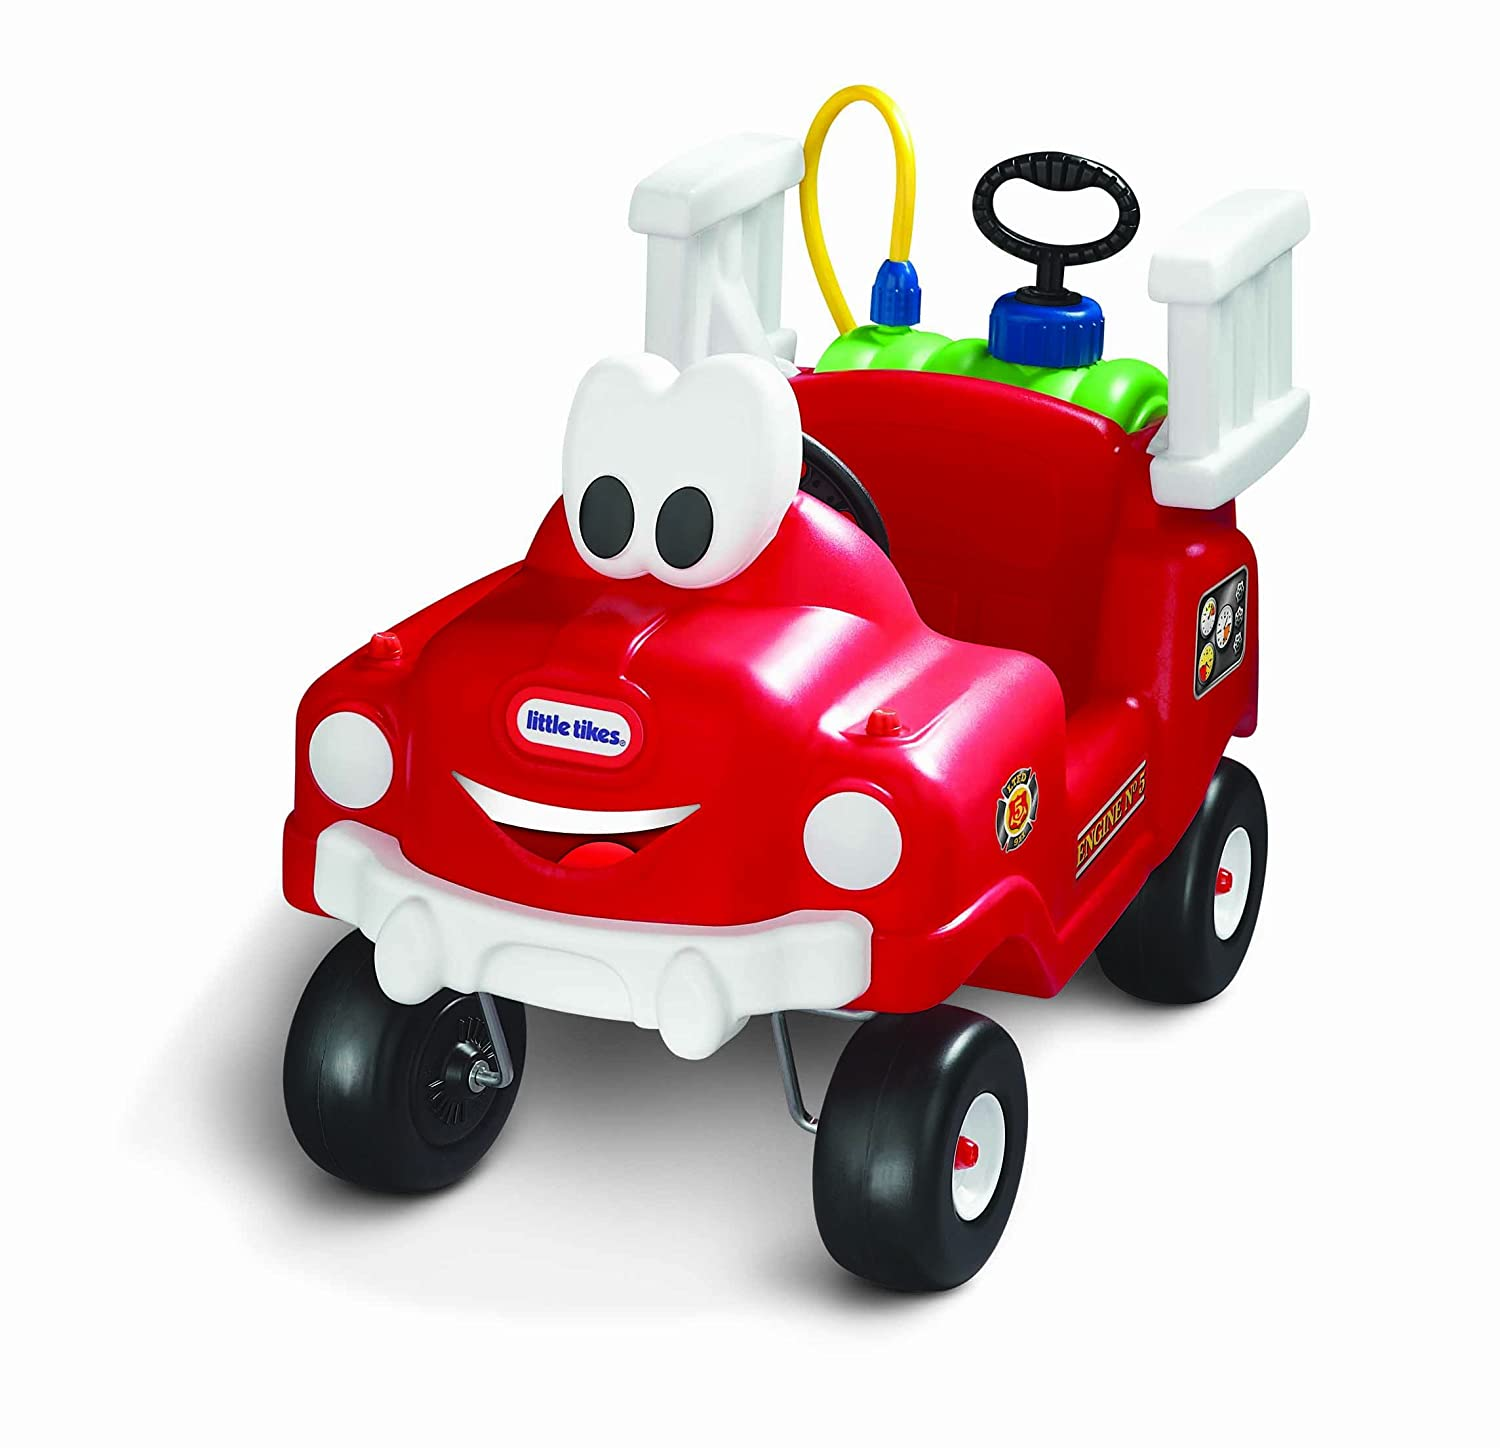 An Image of Little Tikes Spray and Rescue Fire Truck